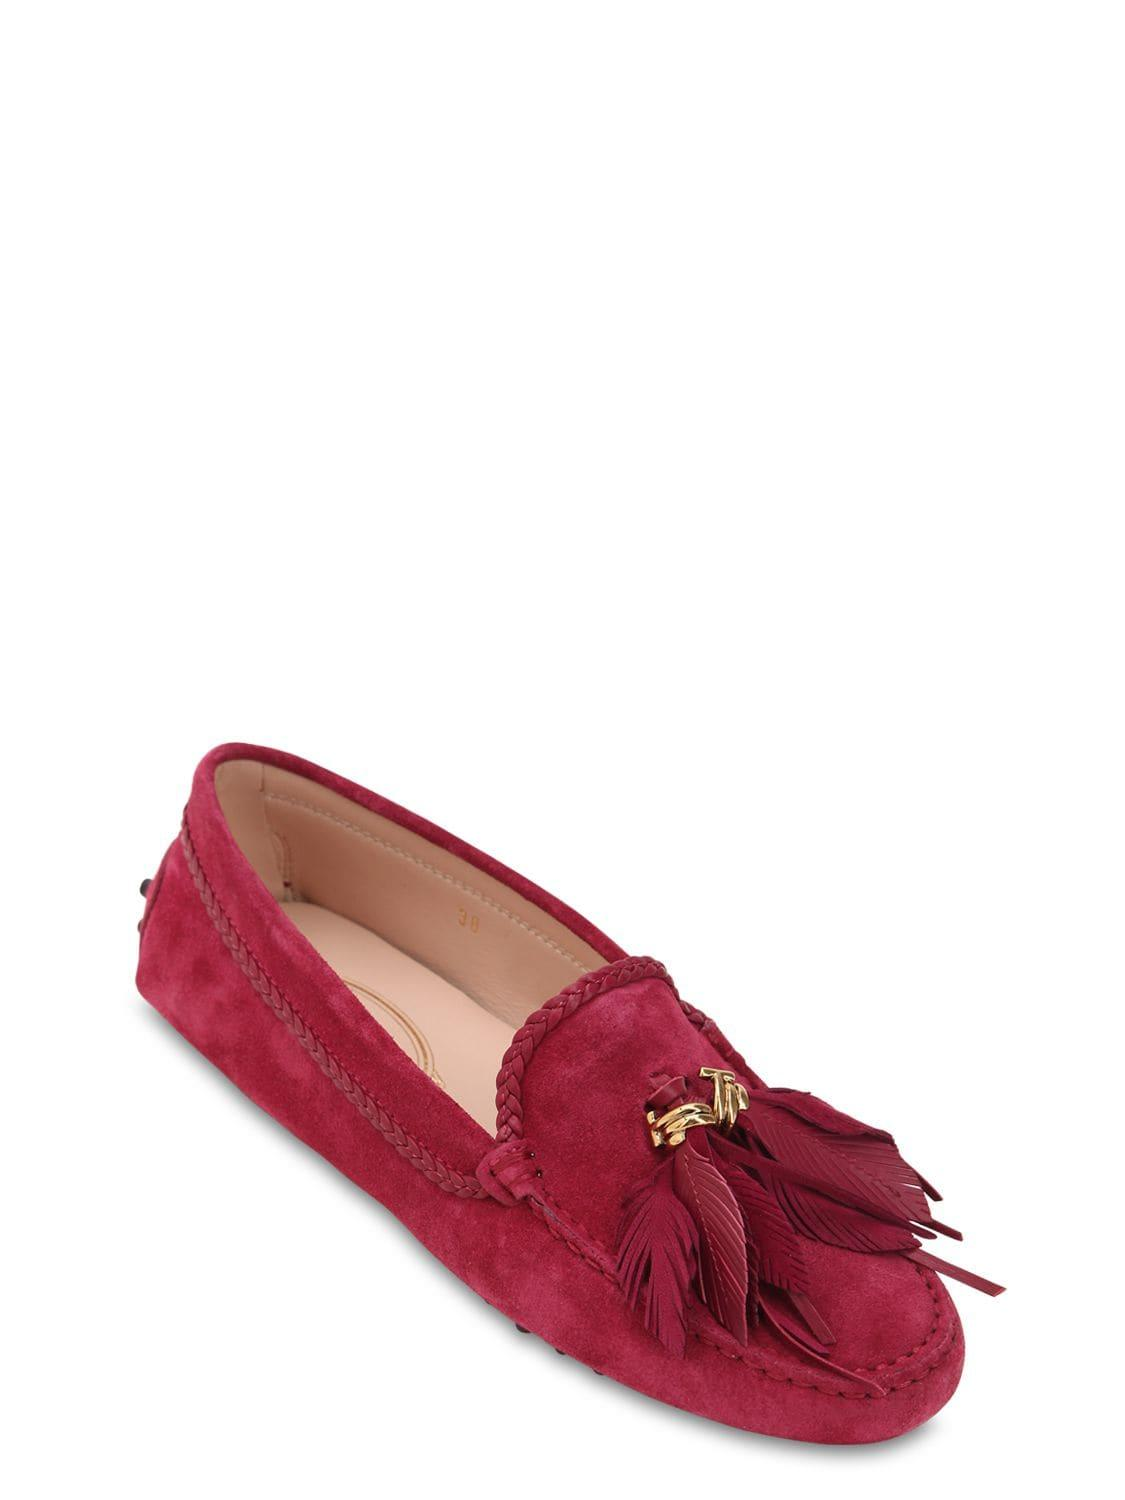 950b334091e Tod s - Red 10mm Gommino Leather Loafers W  Tassels - Lyst. View fullscreen